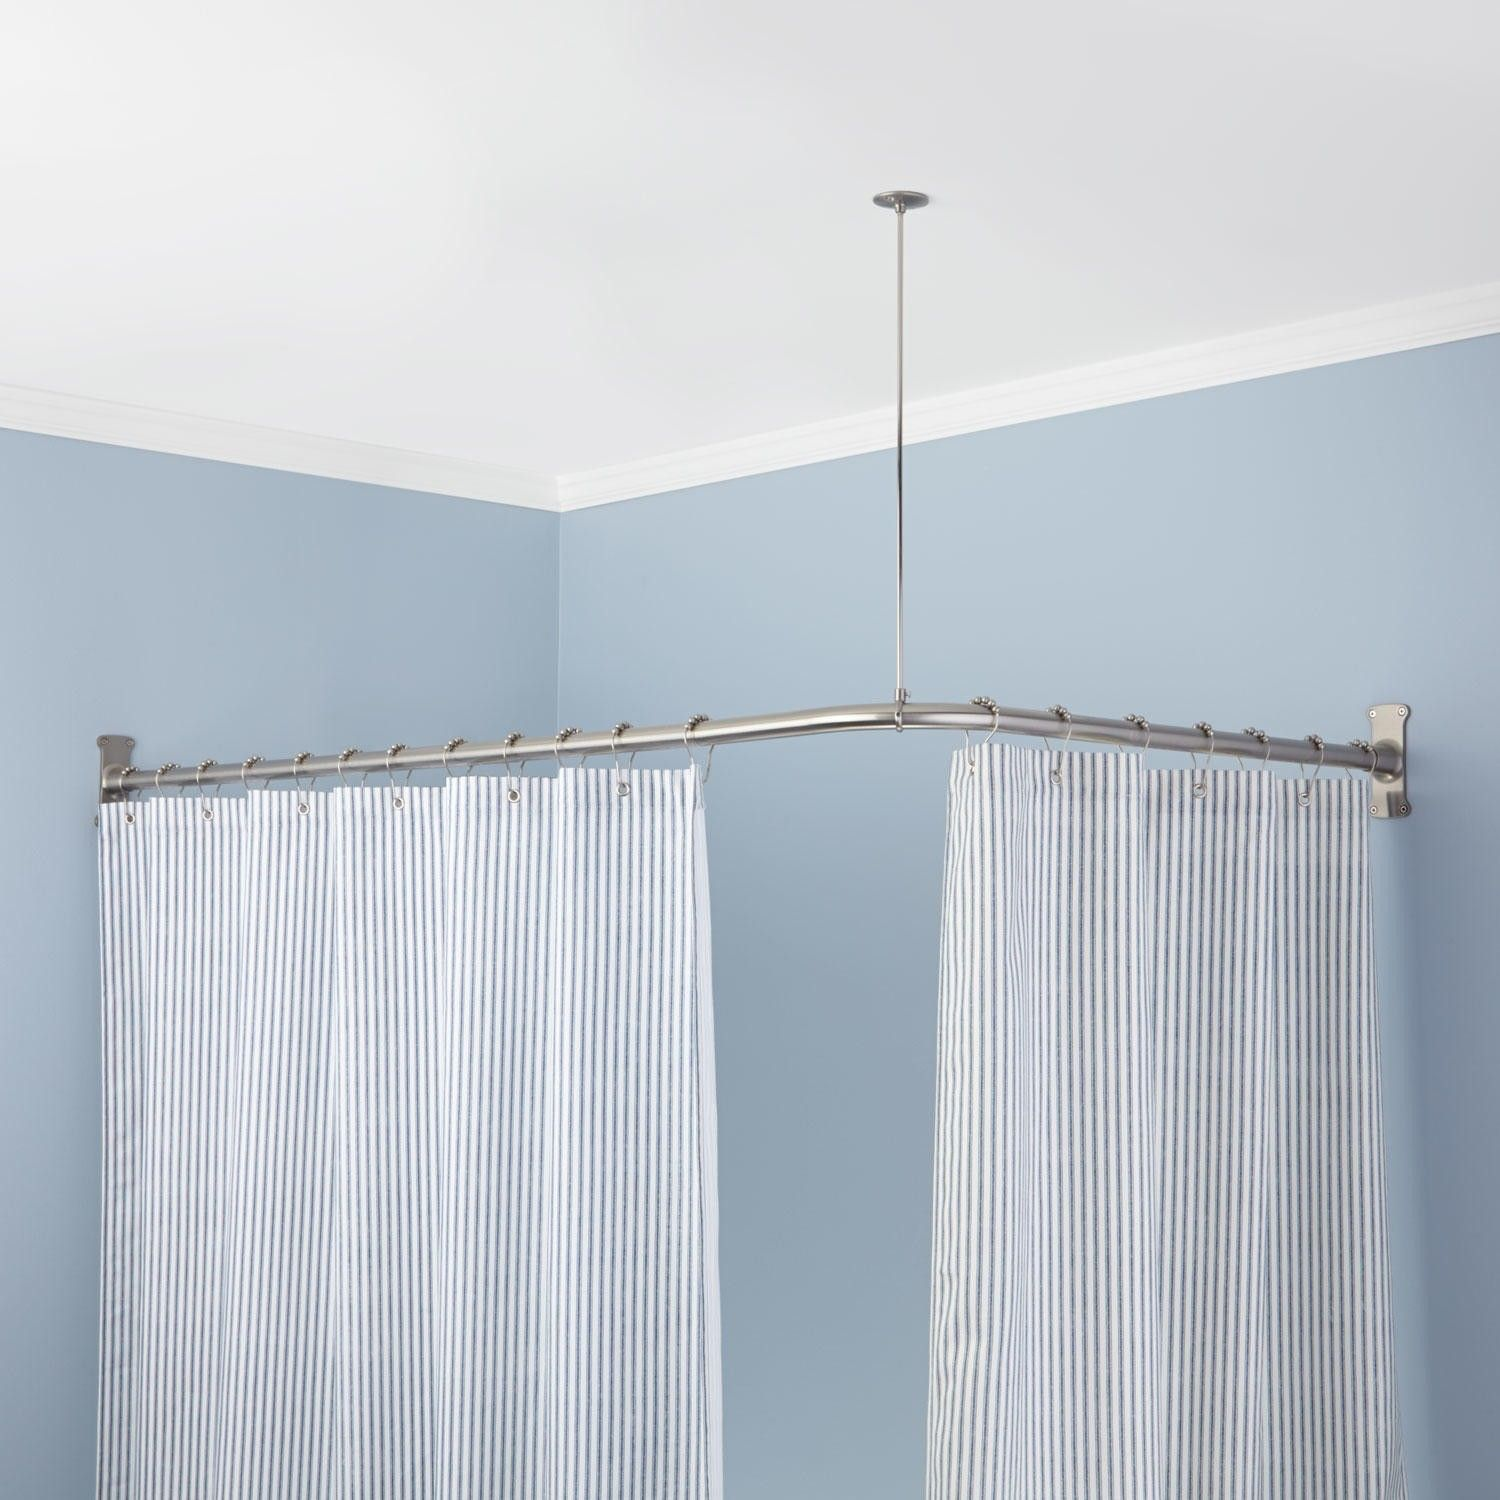 Round Corner Shower Curtain Rod Bathroom Accessories Like Rods Have Significance In Their Very Own